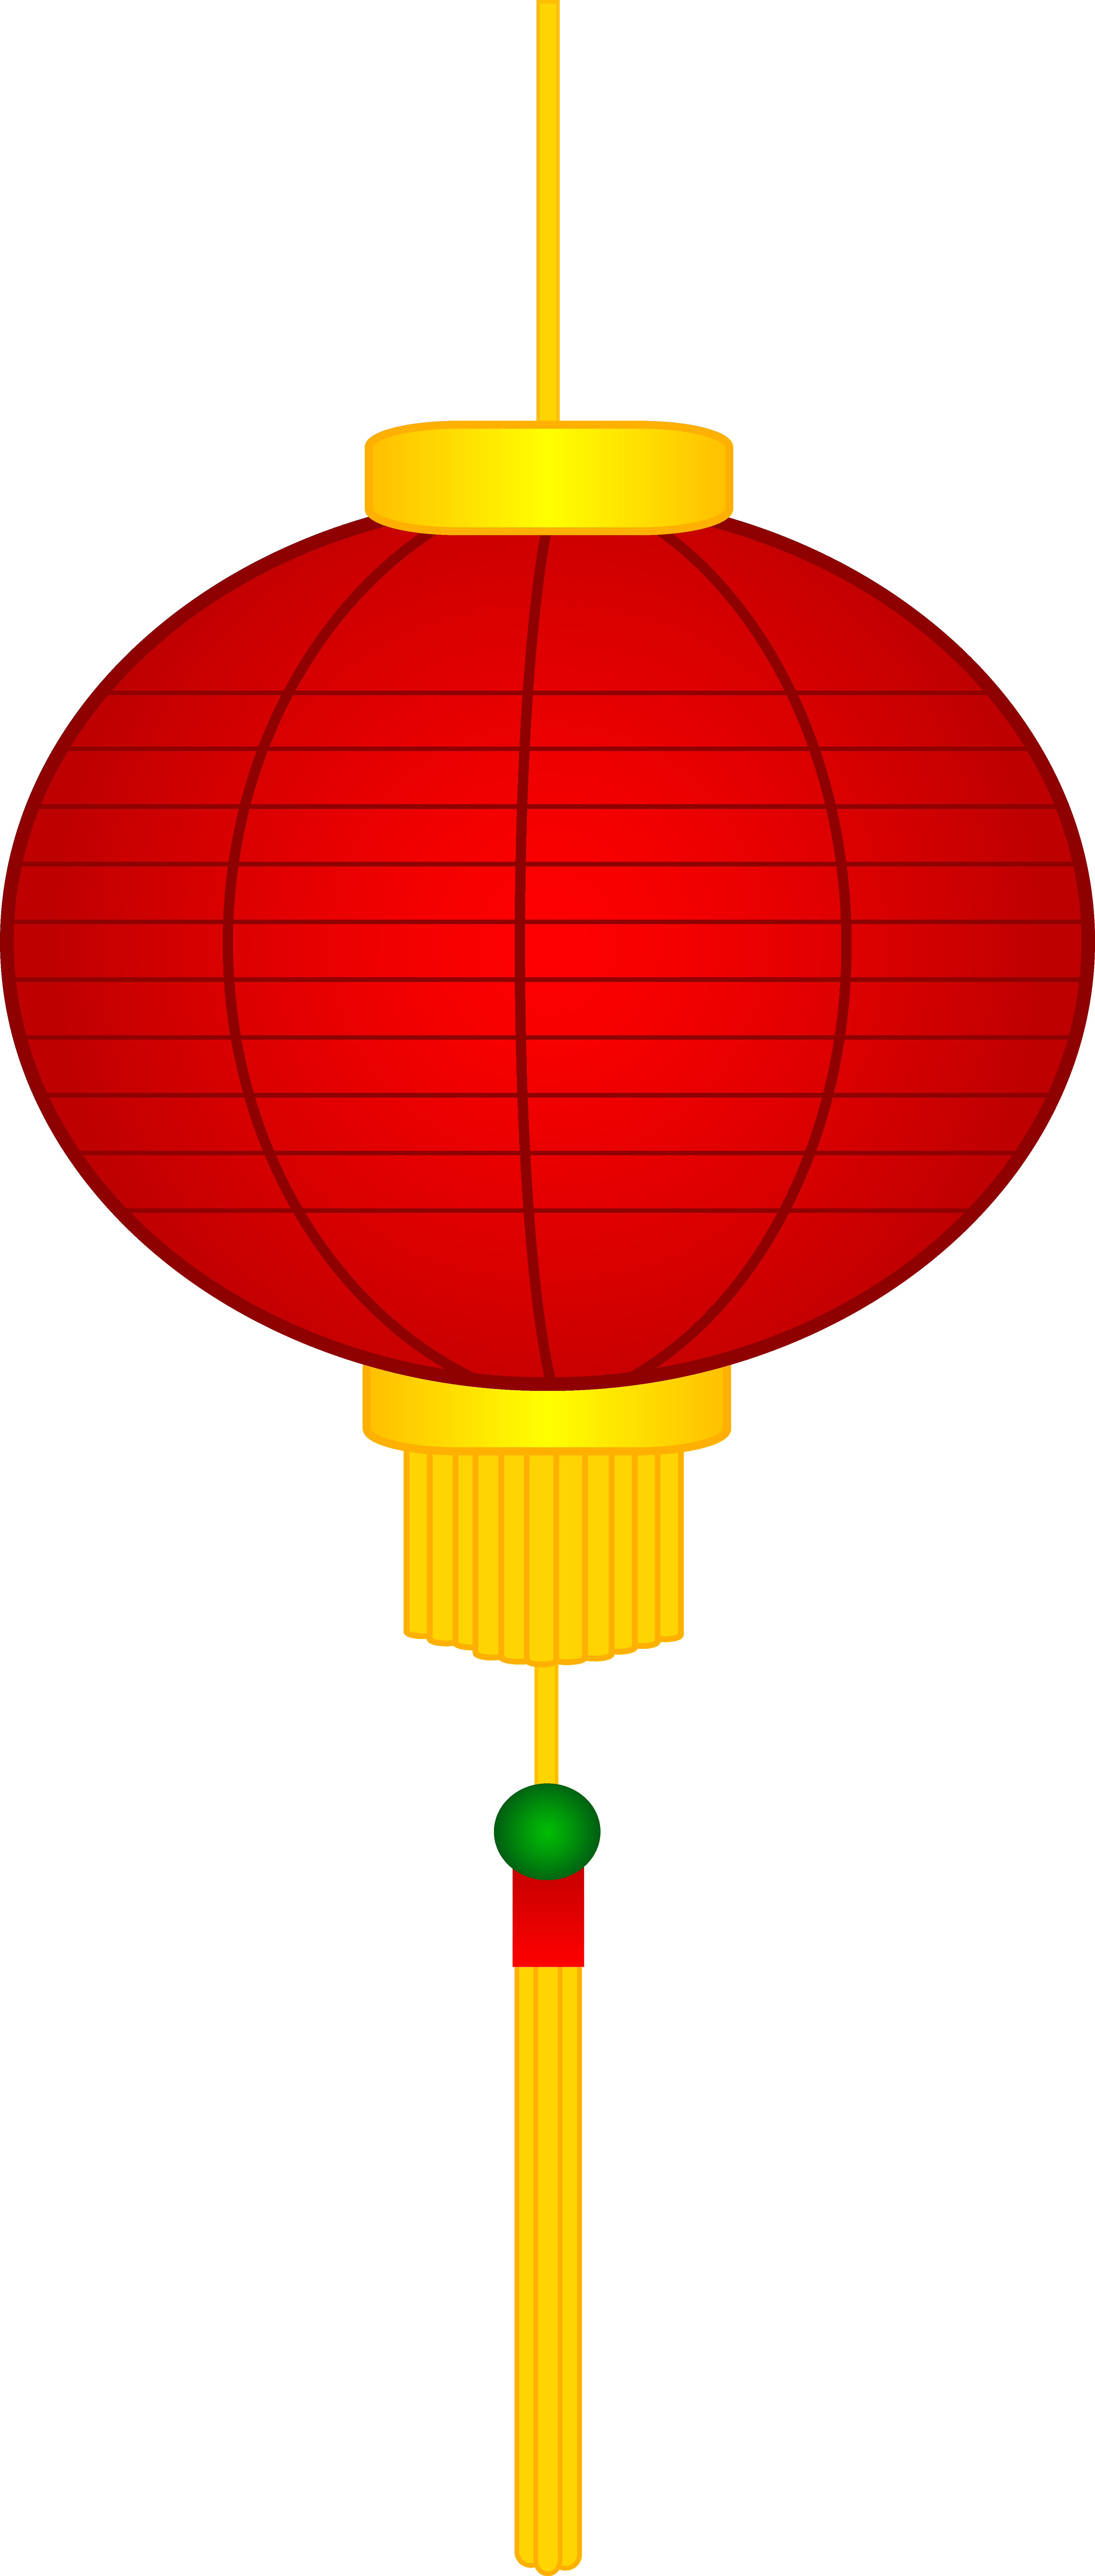 Drawing chinese lantern festival. I thought this one